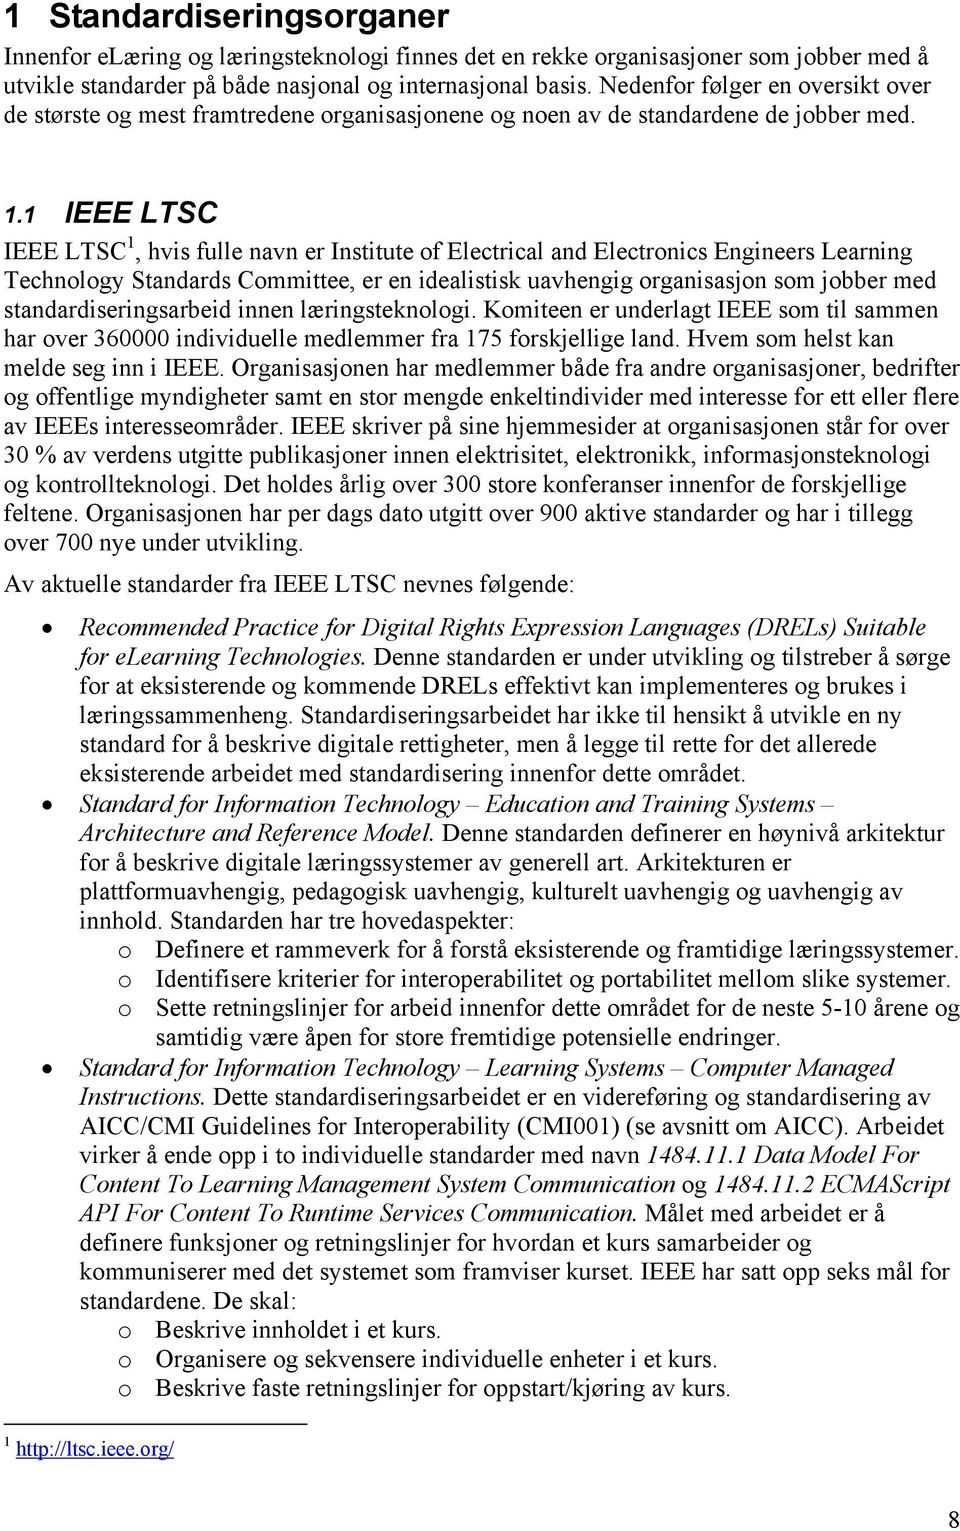 1 IEEE LTSC IEEE LTSC 1, hvis fulle navn er Institute of Electrical and Electronics Engineers Learning Technology Standards Committee, er en idealistisk uavhengig organisasjon som jobber med